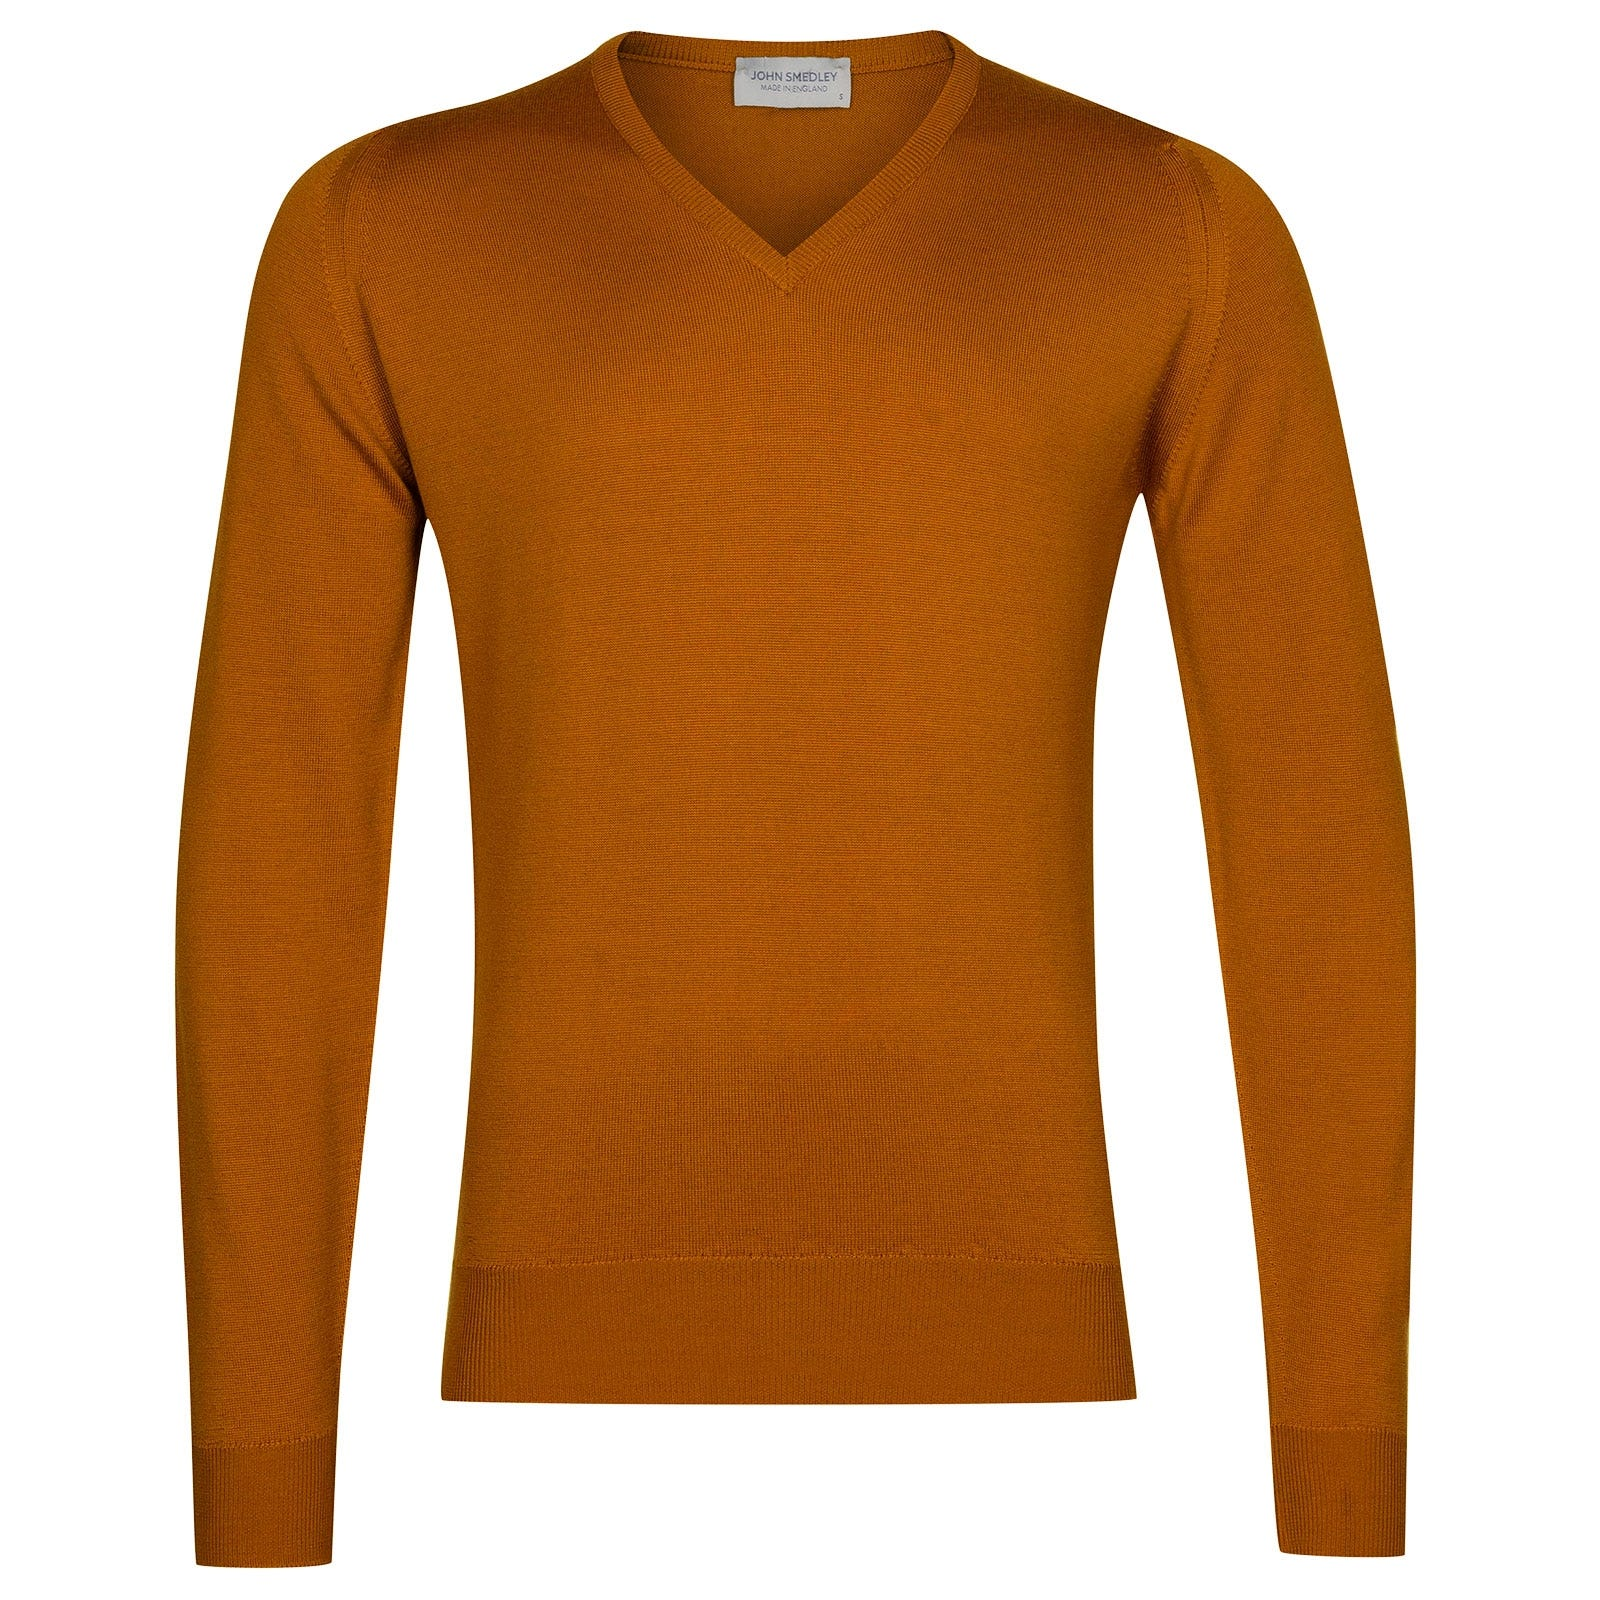 John Smedley Blenheim Merino Wool Pullover in Bronze-XL